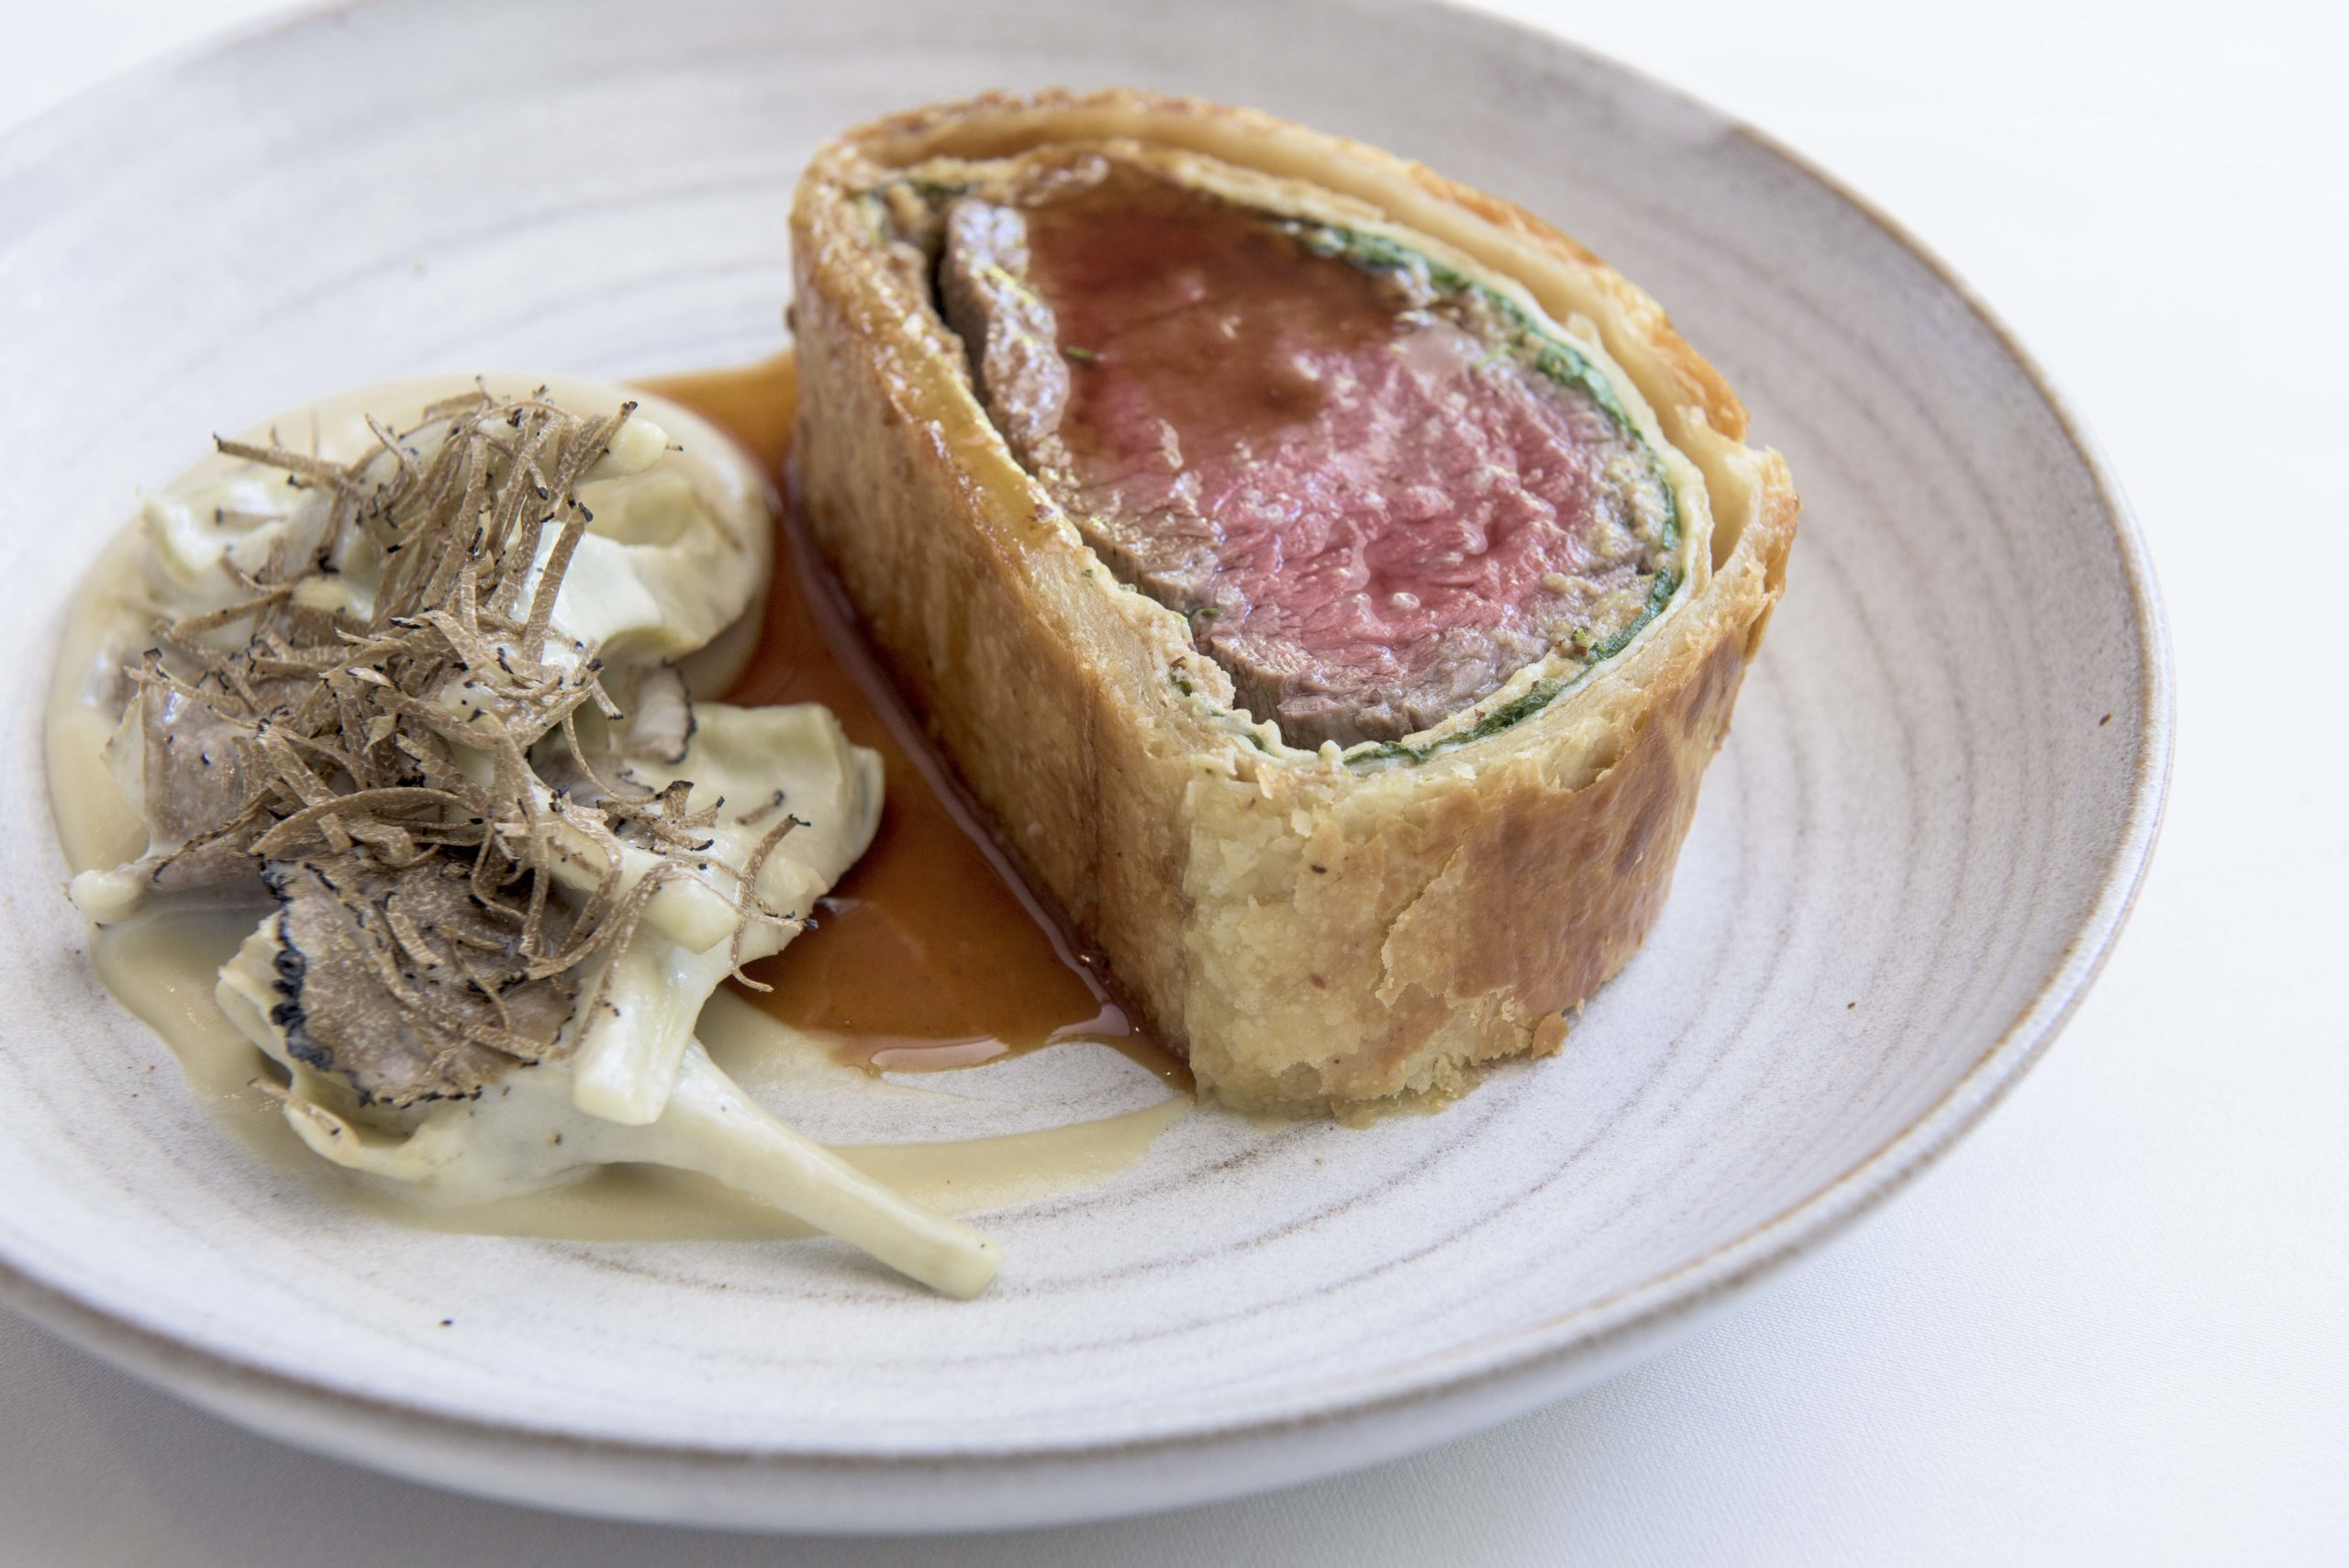 Luxurious Beef Wellington with Warm Baby Artichokes and a Truffle Vinaigrette